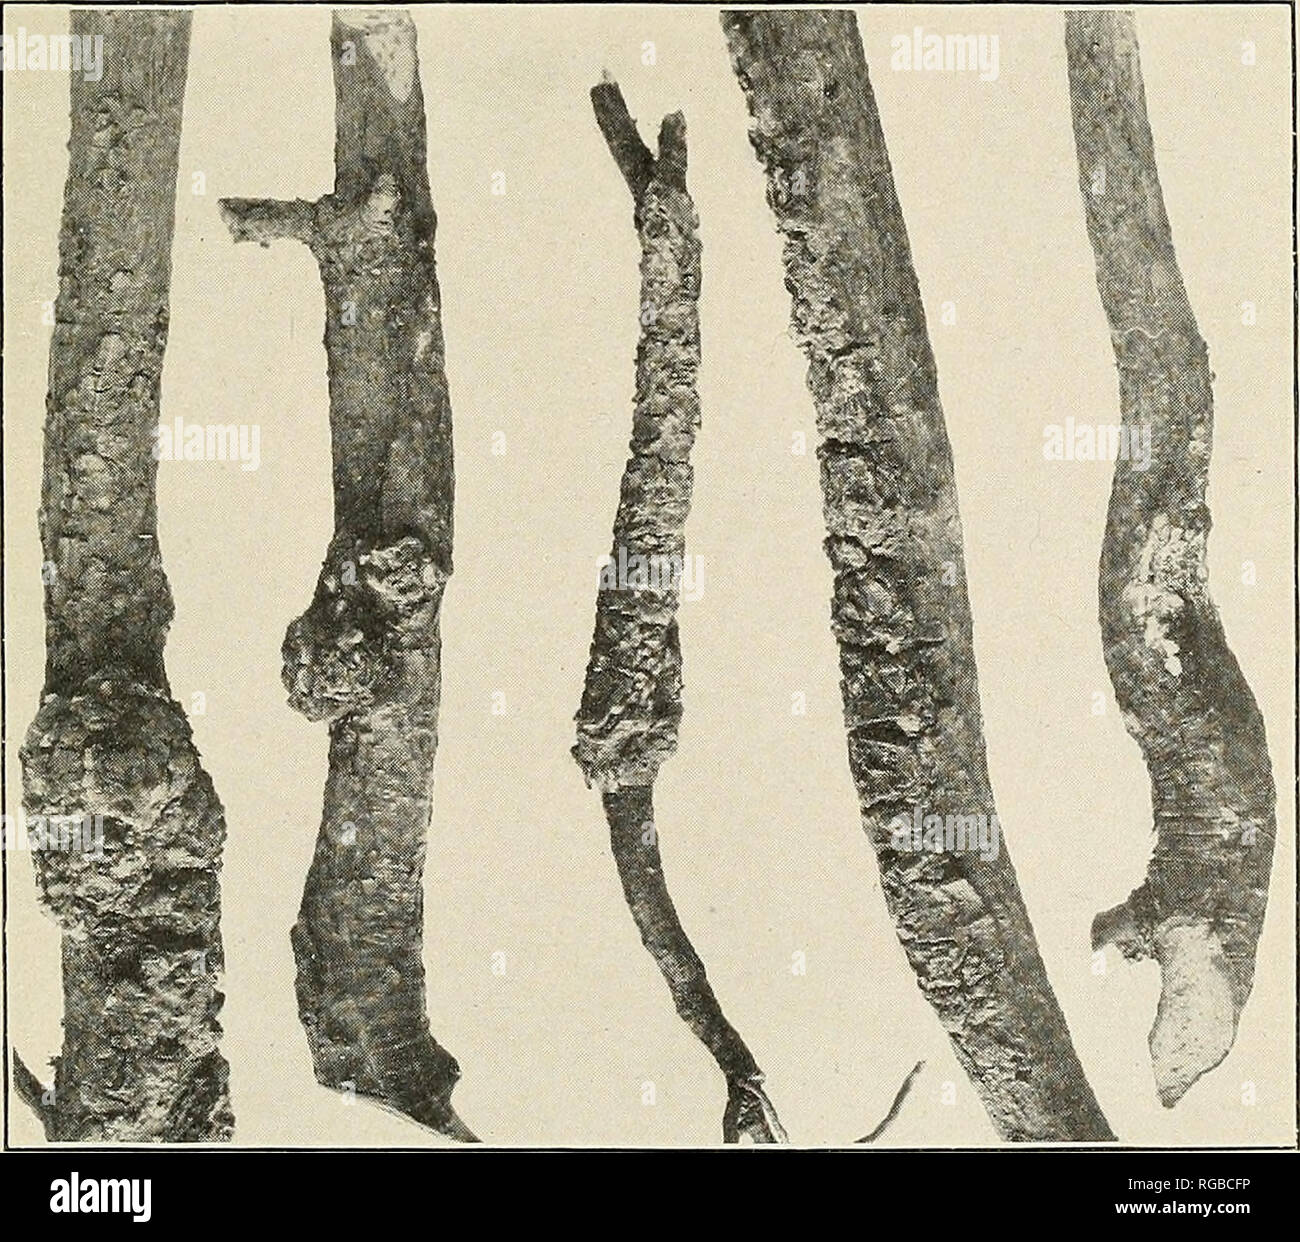 . Bulletin of the U.S. Department of Agriculture. Agriculture; Agriculture. Fig. 1.—A 6-Year-0ld Jack Pine In- fected WITH PERIDERMIUM CEREBRUM. The complete girdling of the main stem by two oppositely arranged galls is shown. Note the wedge-shaped gall tissues. Fiq. 2.—Four-Year-Old Seedlings of Jack Pine, Showing the Char- acteristic Swellings of Perider- mium Cerebrum. The entire crown of the seedlings develops into spherical brooms.. Fig. 3.—Various Types of Infection of Young Jack Pine by Peri- dermium comptoniae. Note that in the central figure the fungus has invaded the underground tiss - Stock Image